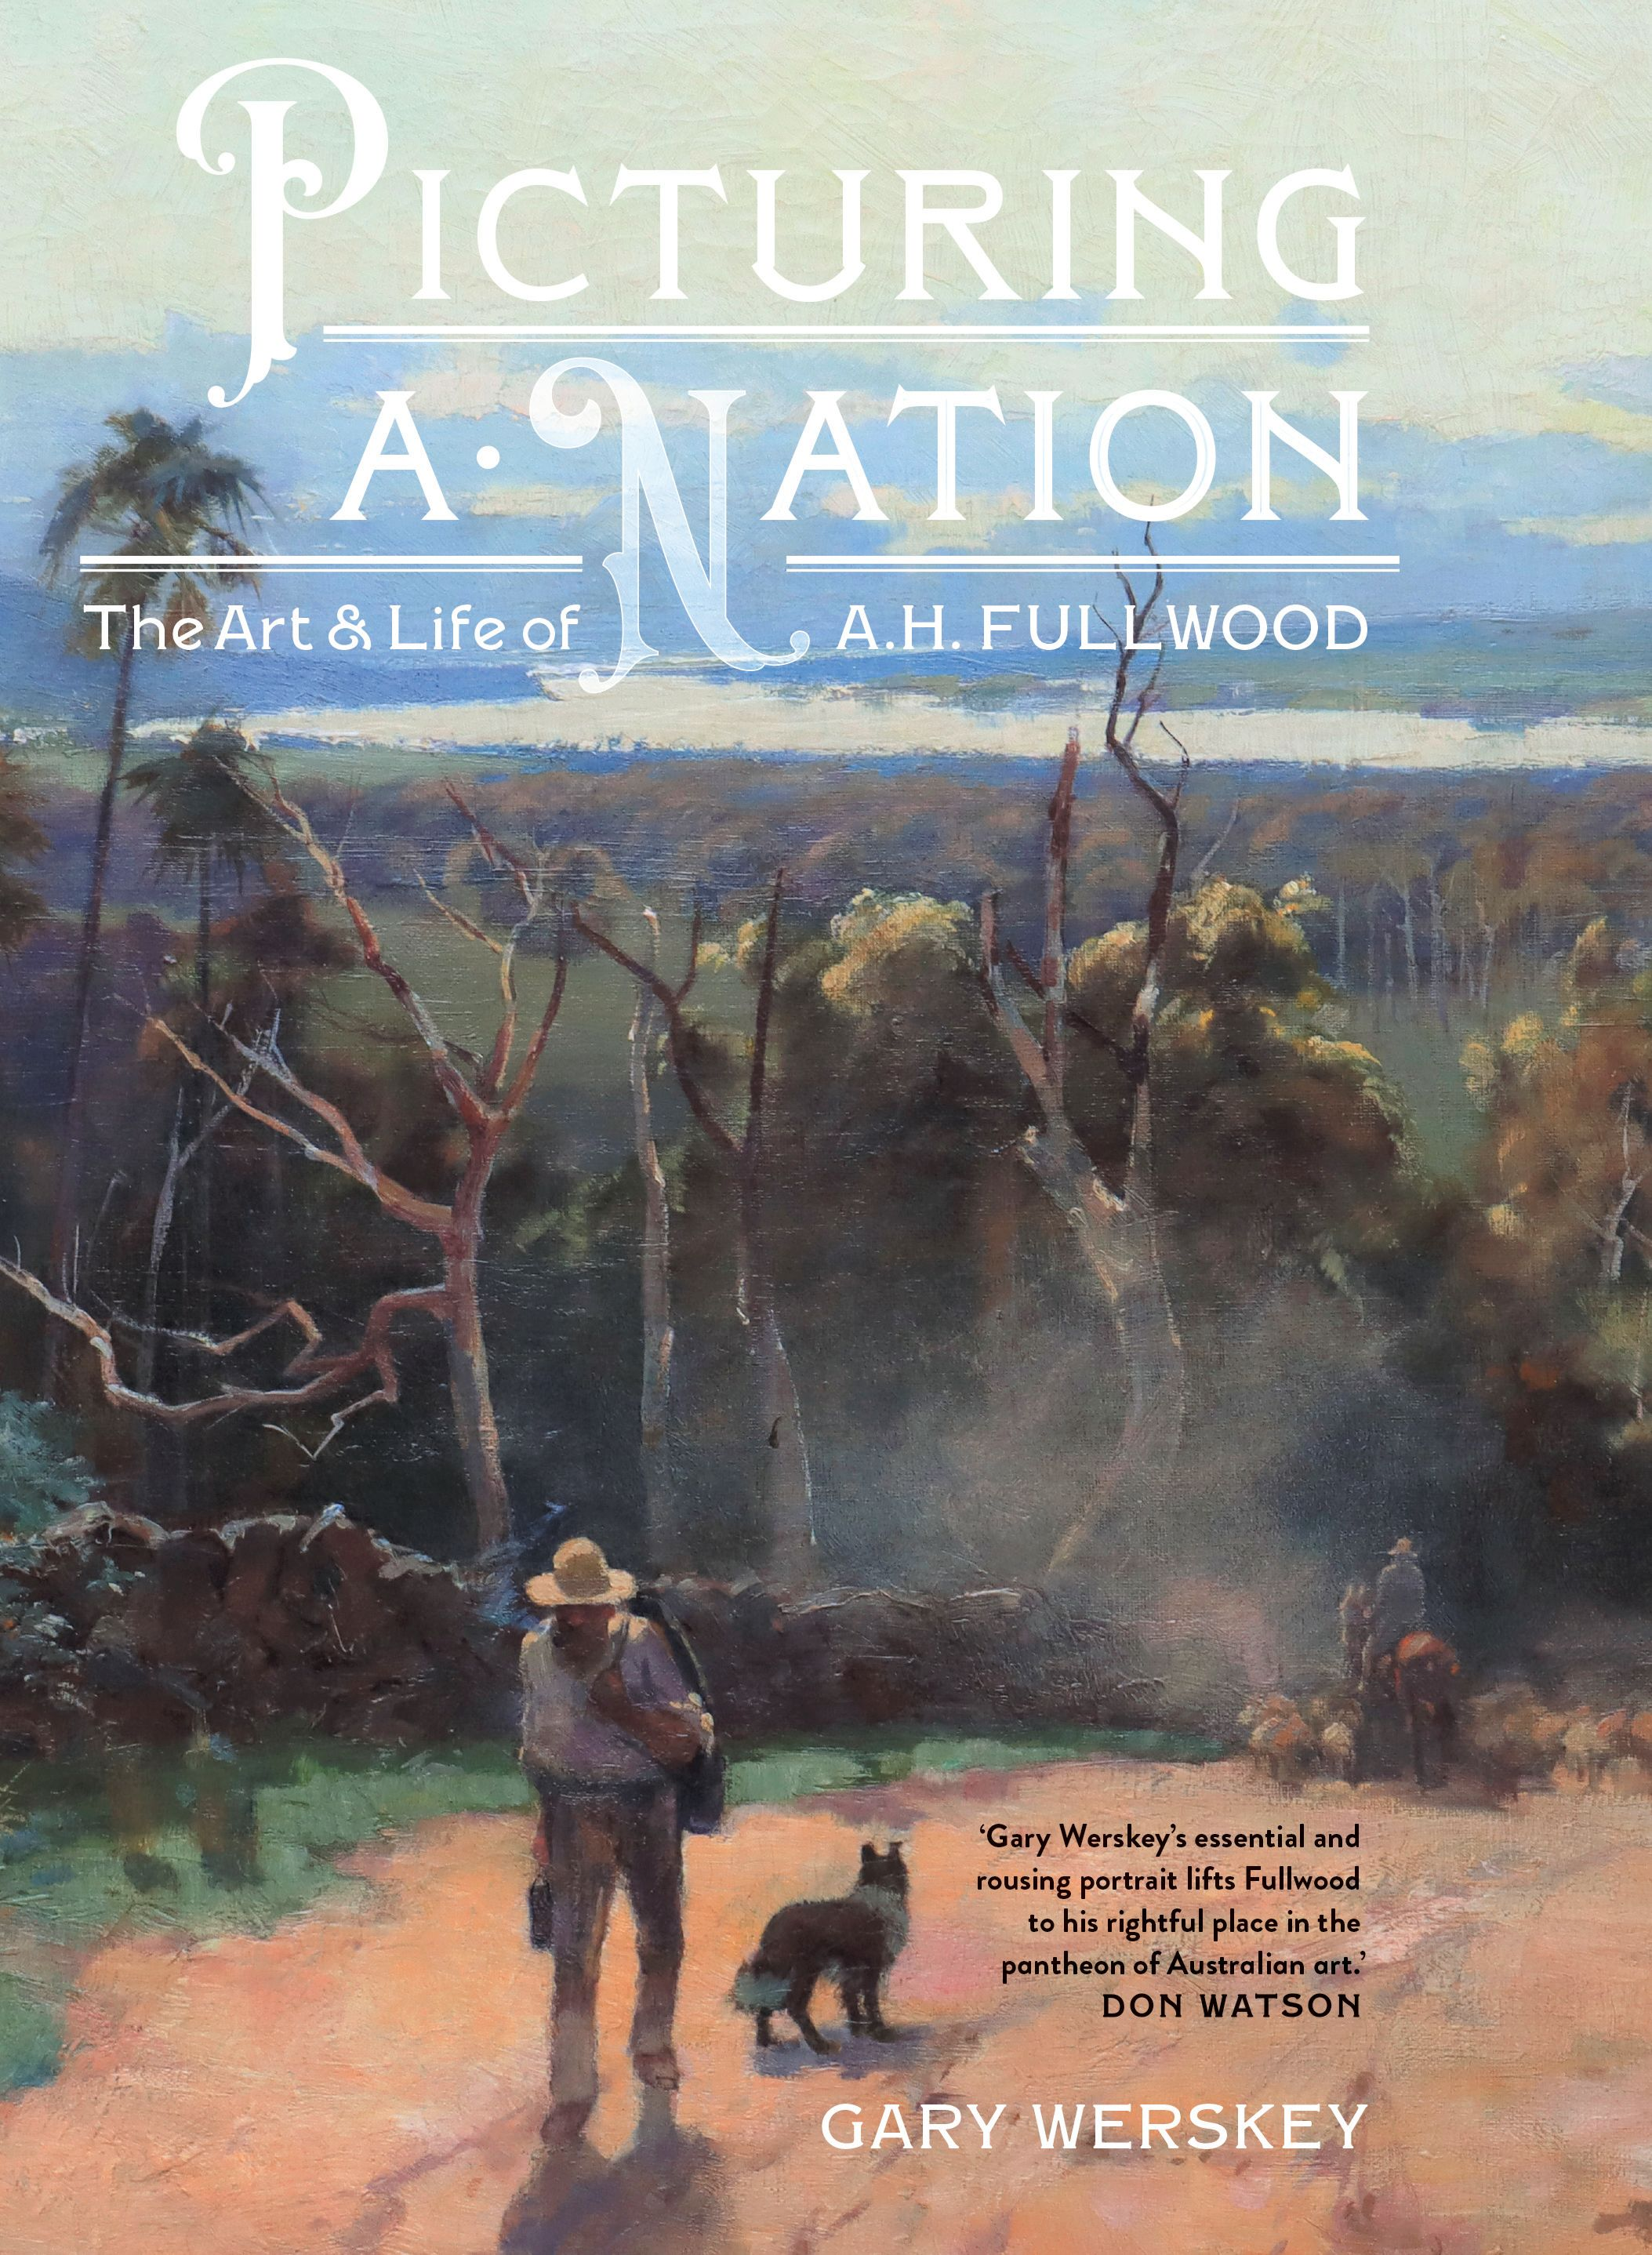 Picturing a Nation: The Art and Life of A. H. Fullwood, by Gary Werskey